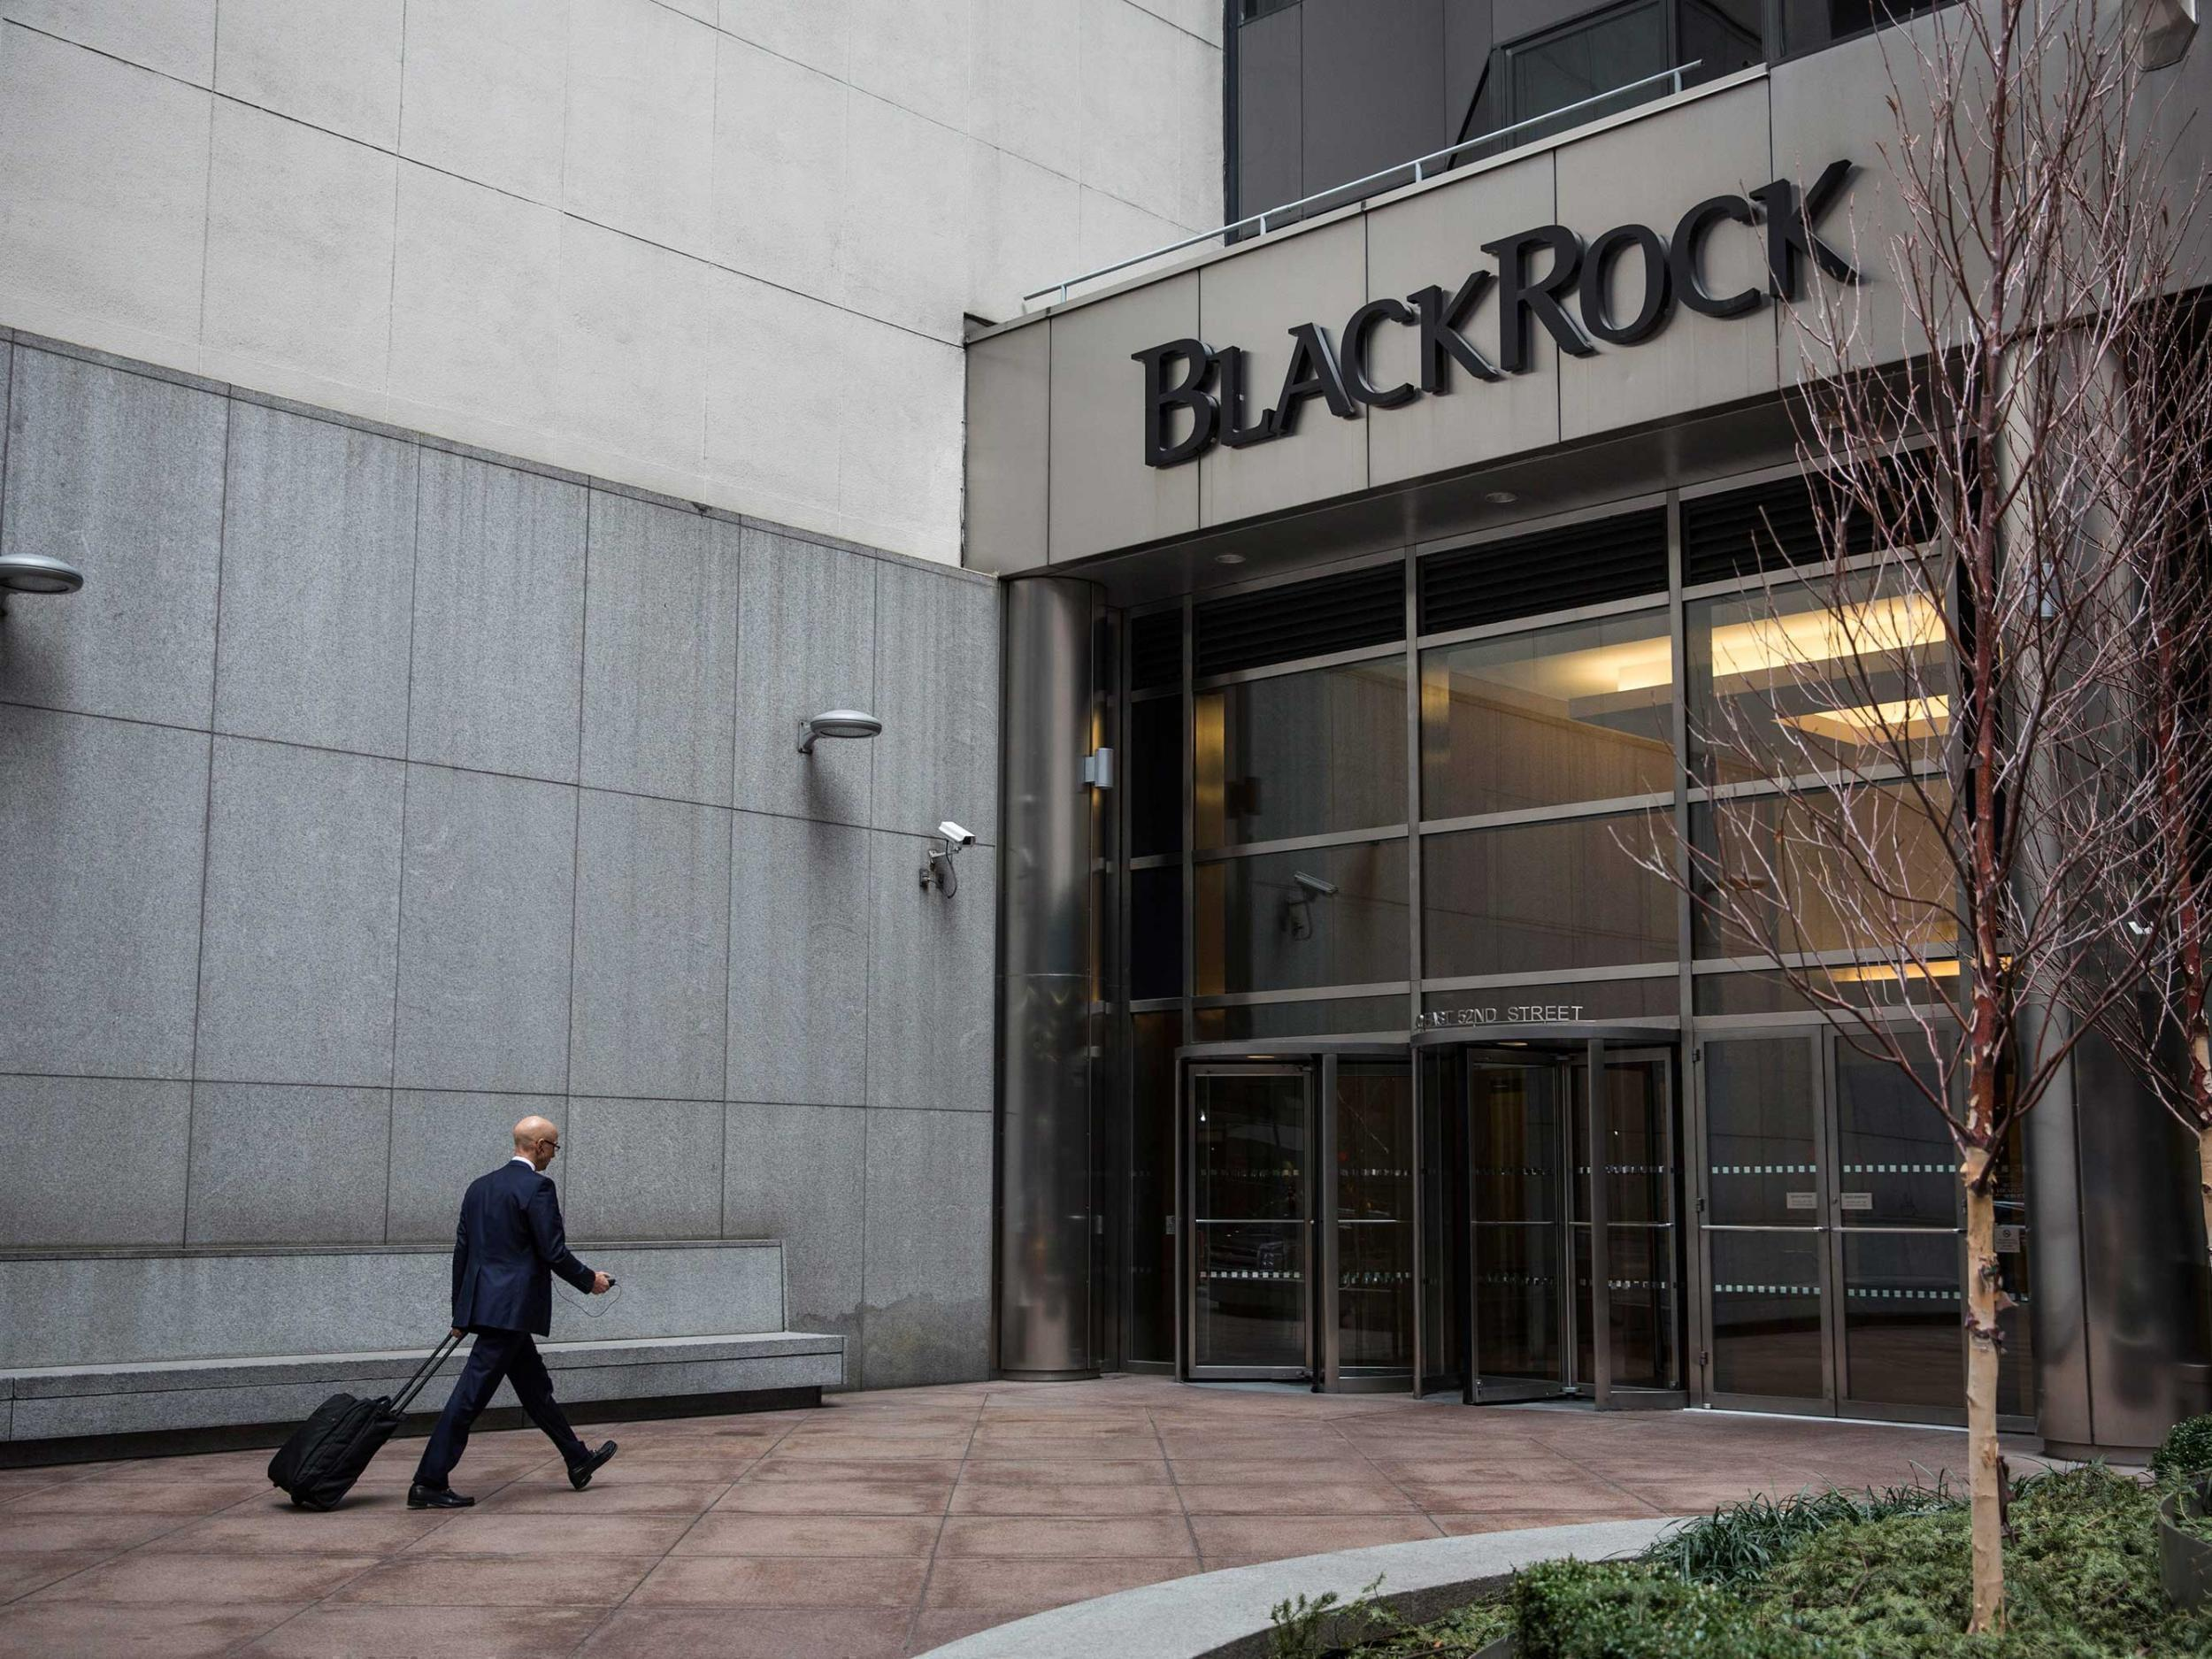 Bitcoin: BlackRock allows its funds to invest in bitcoin futures for first time